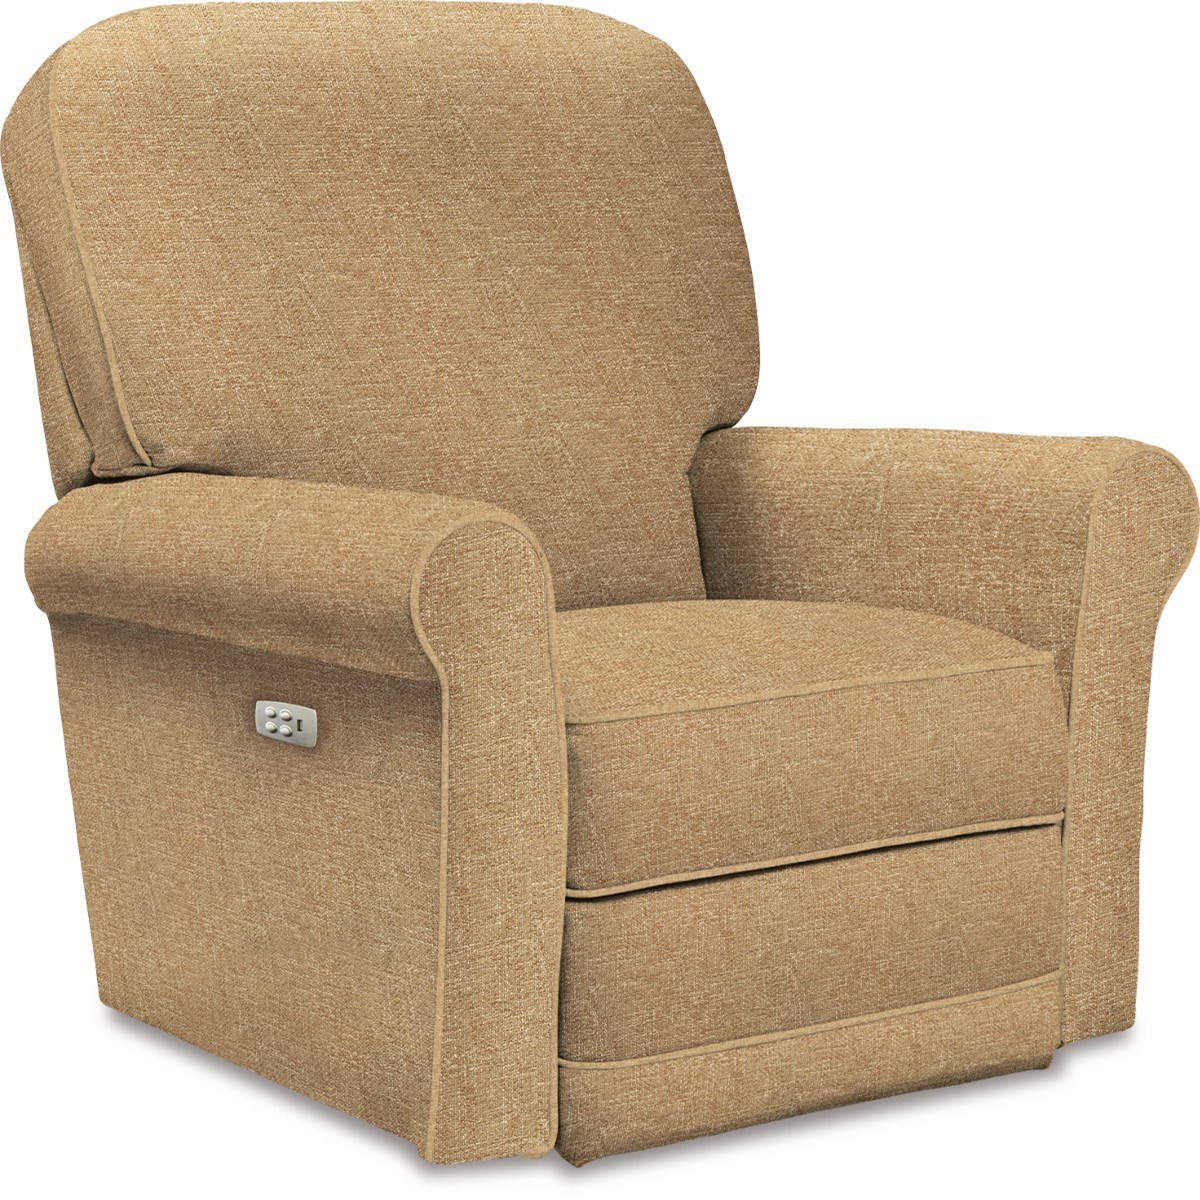 Addison Power-Recline-XRw™ RECLINA-WAY® Recliner by La-Z-Boy at Home Furnishings Direct